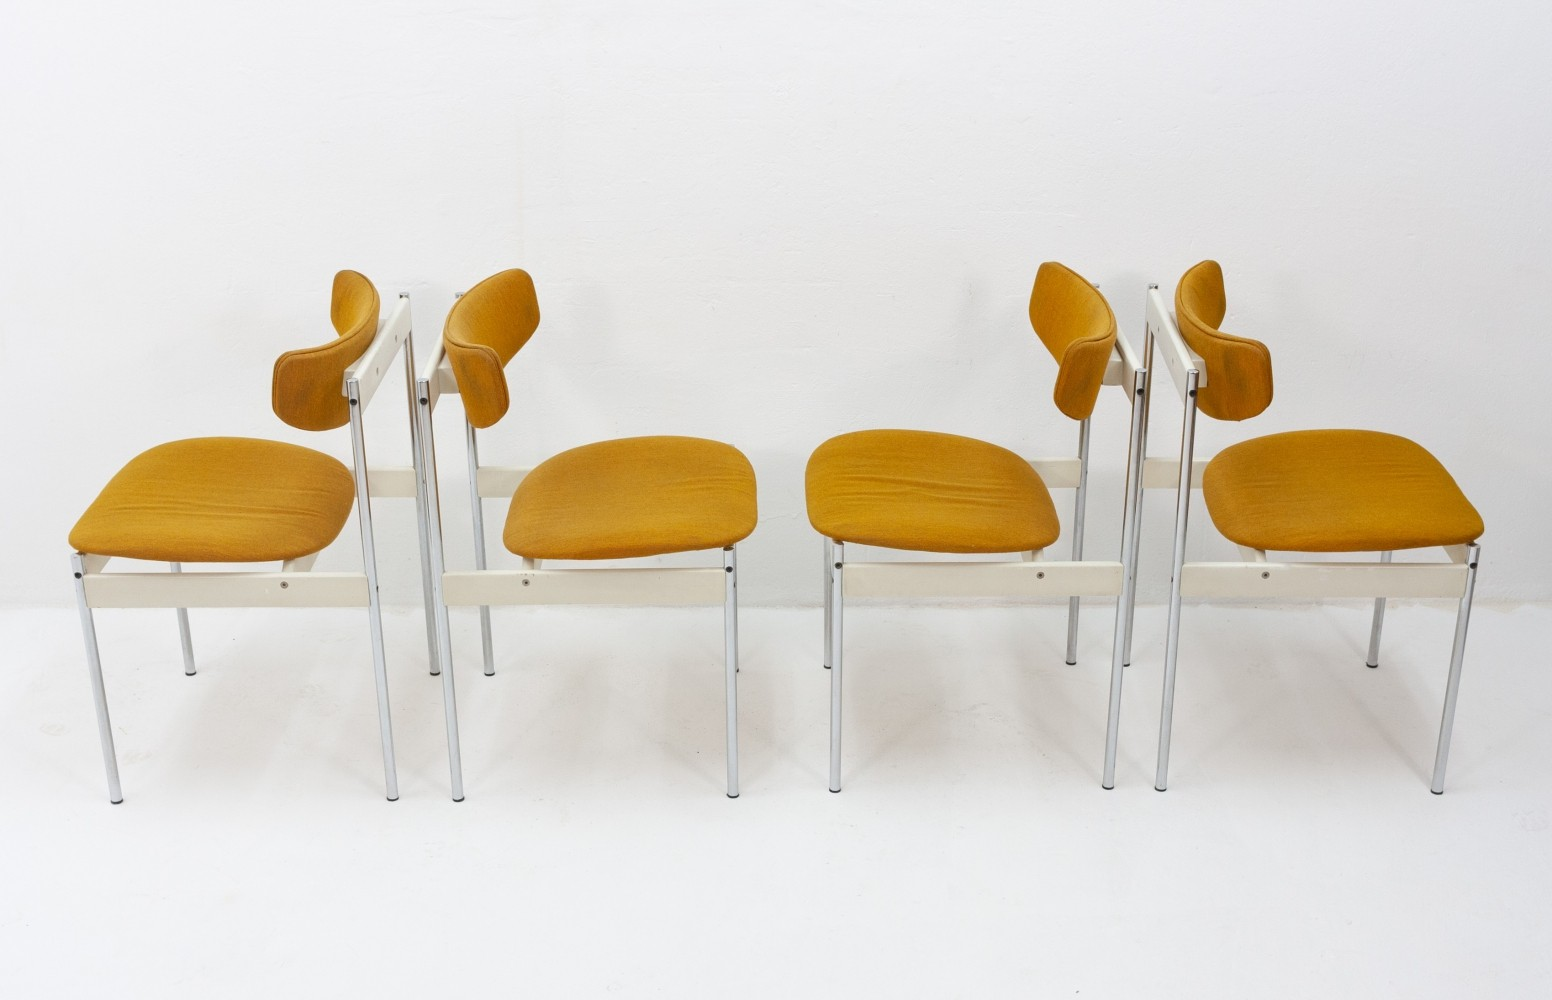 Set of 4 mustard yellow chairs by C. Denekamp for Thereca